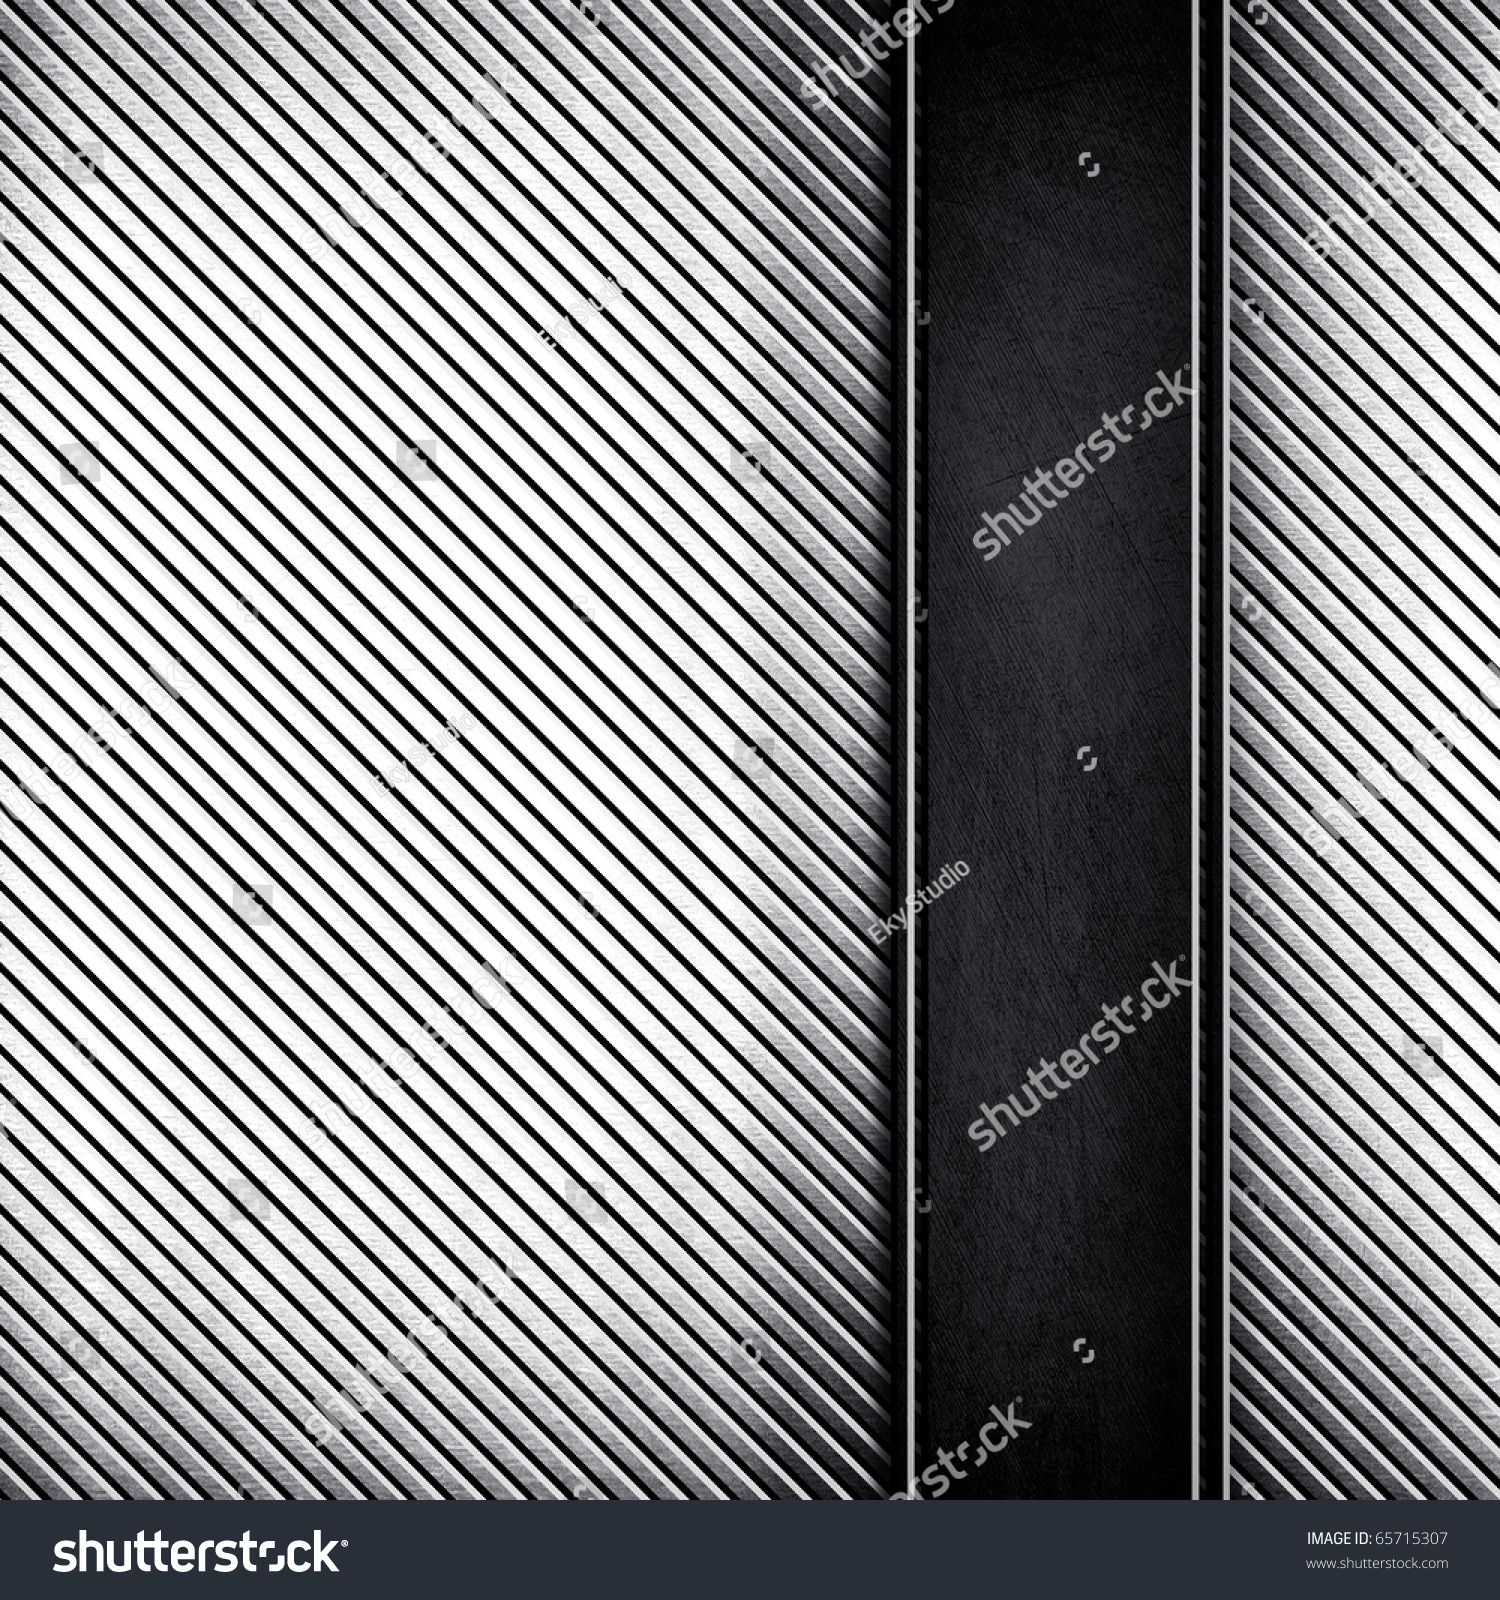 metal template stock photo 65715307   shutterstock